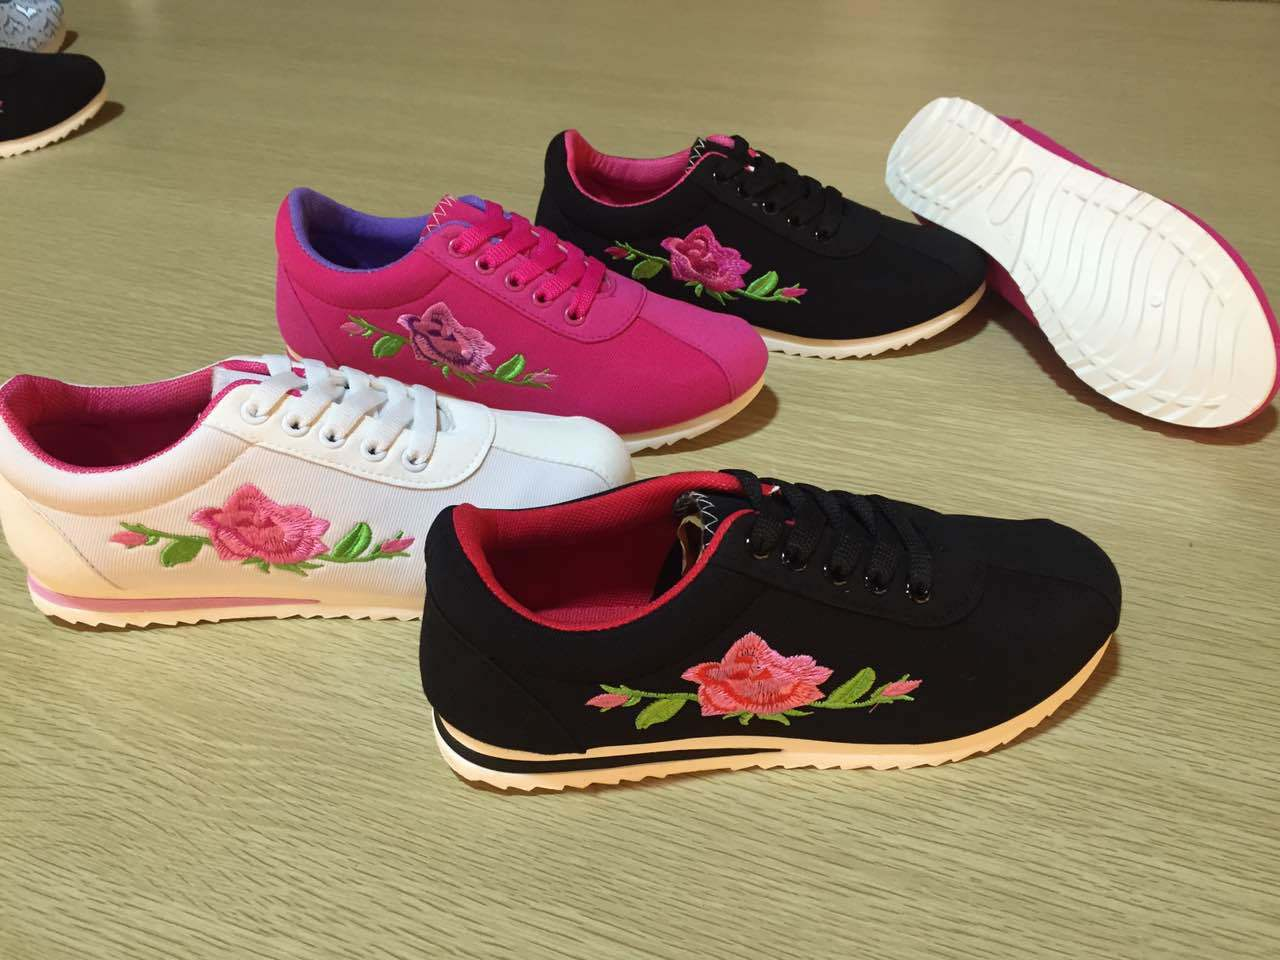 Flat Lace up Comfort Women Sports Shoes with Flowers Fabric